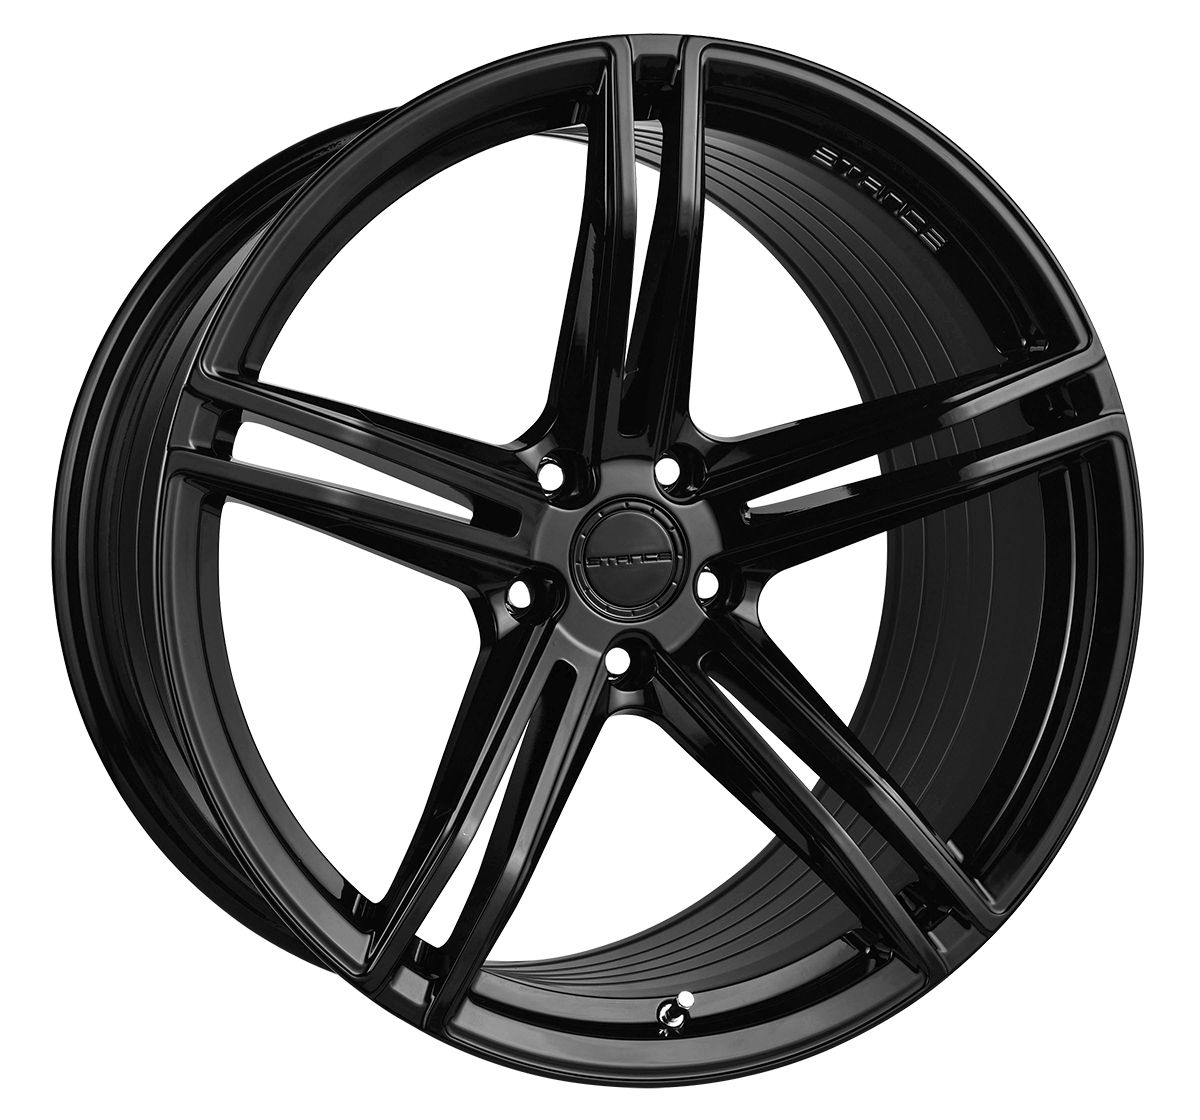 Stance SF08 Aftermarket Wheels for Jeep and Dodge